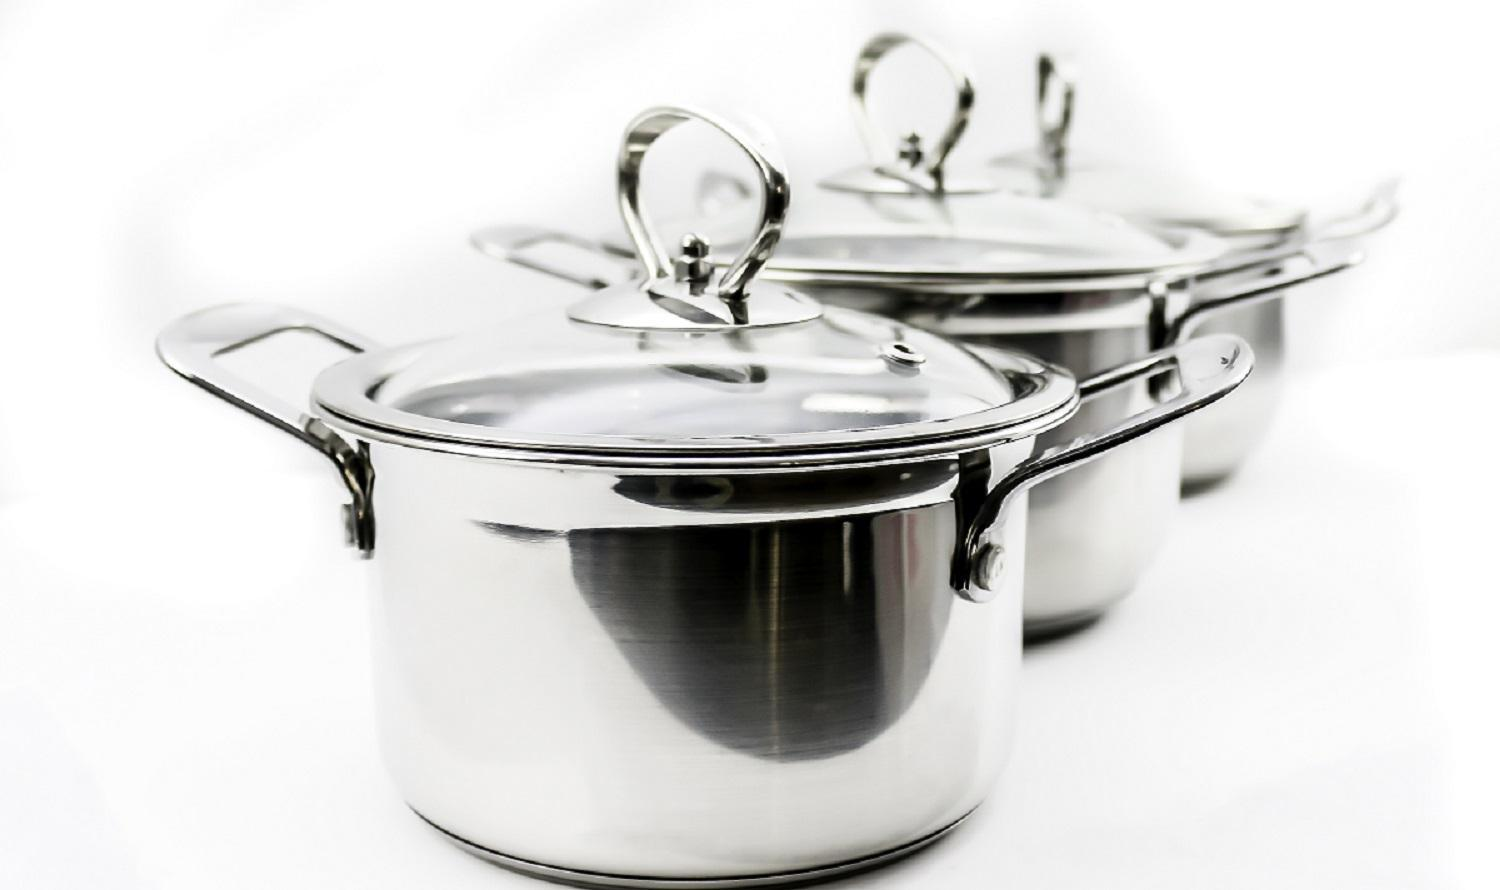 New Black Owned Cookware Company Launches